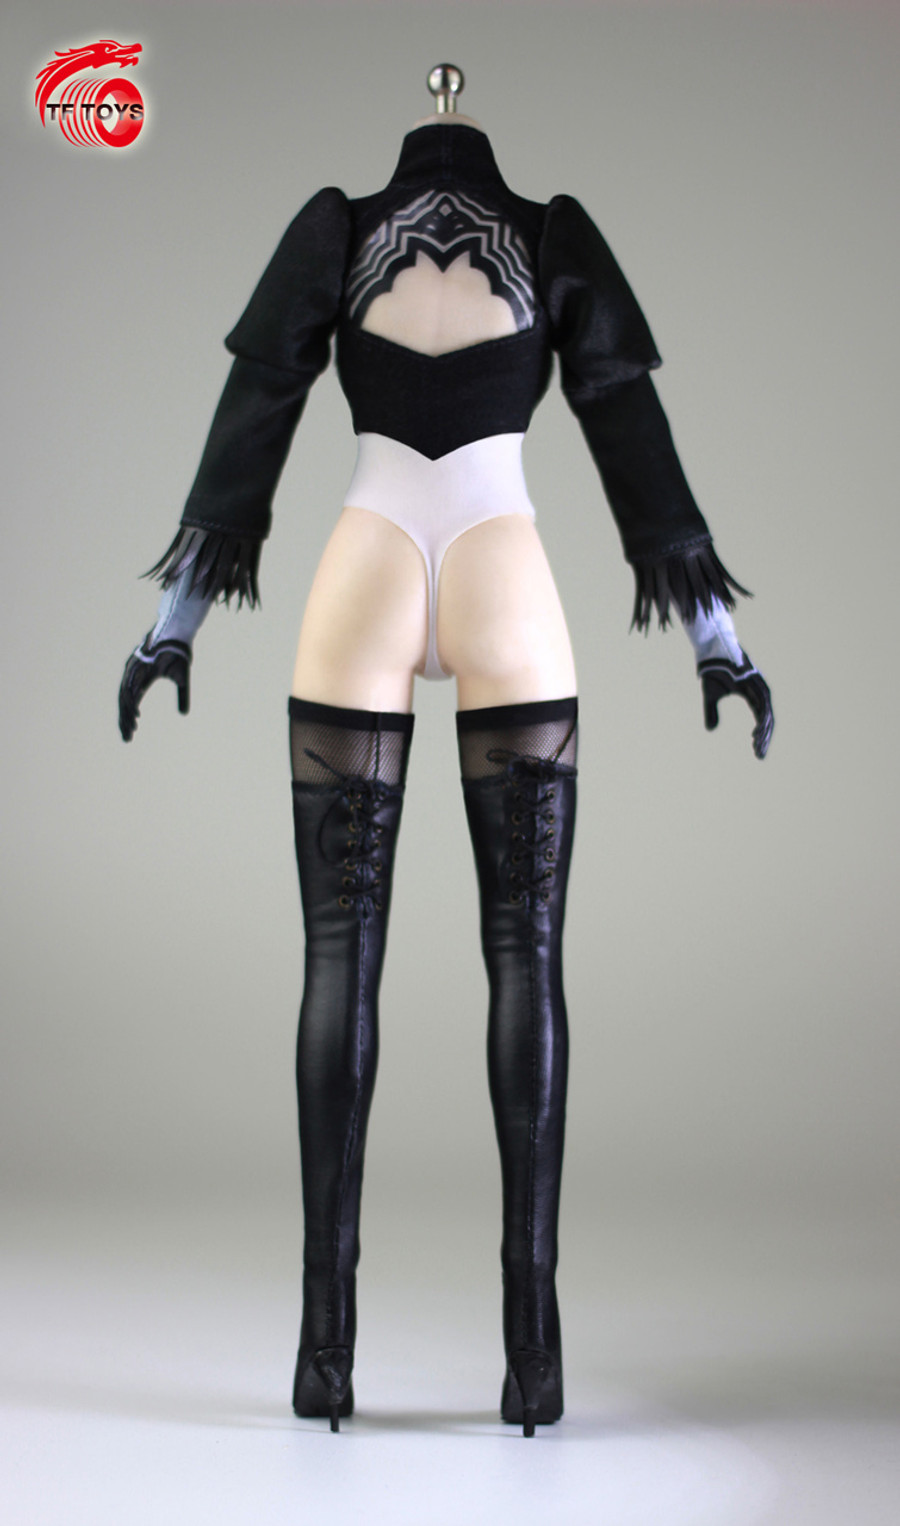 TF Toys - Cosplay Girl Accessory Set